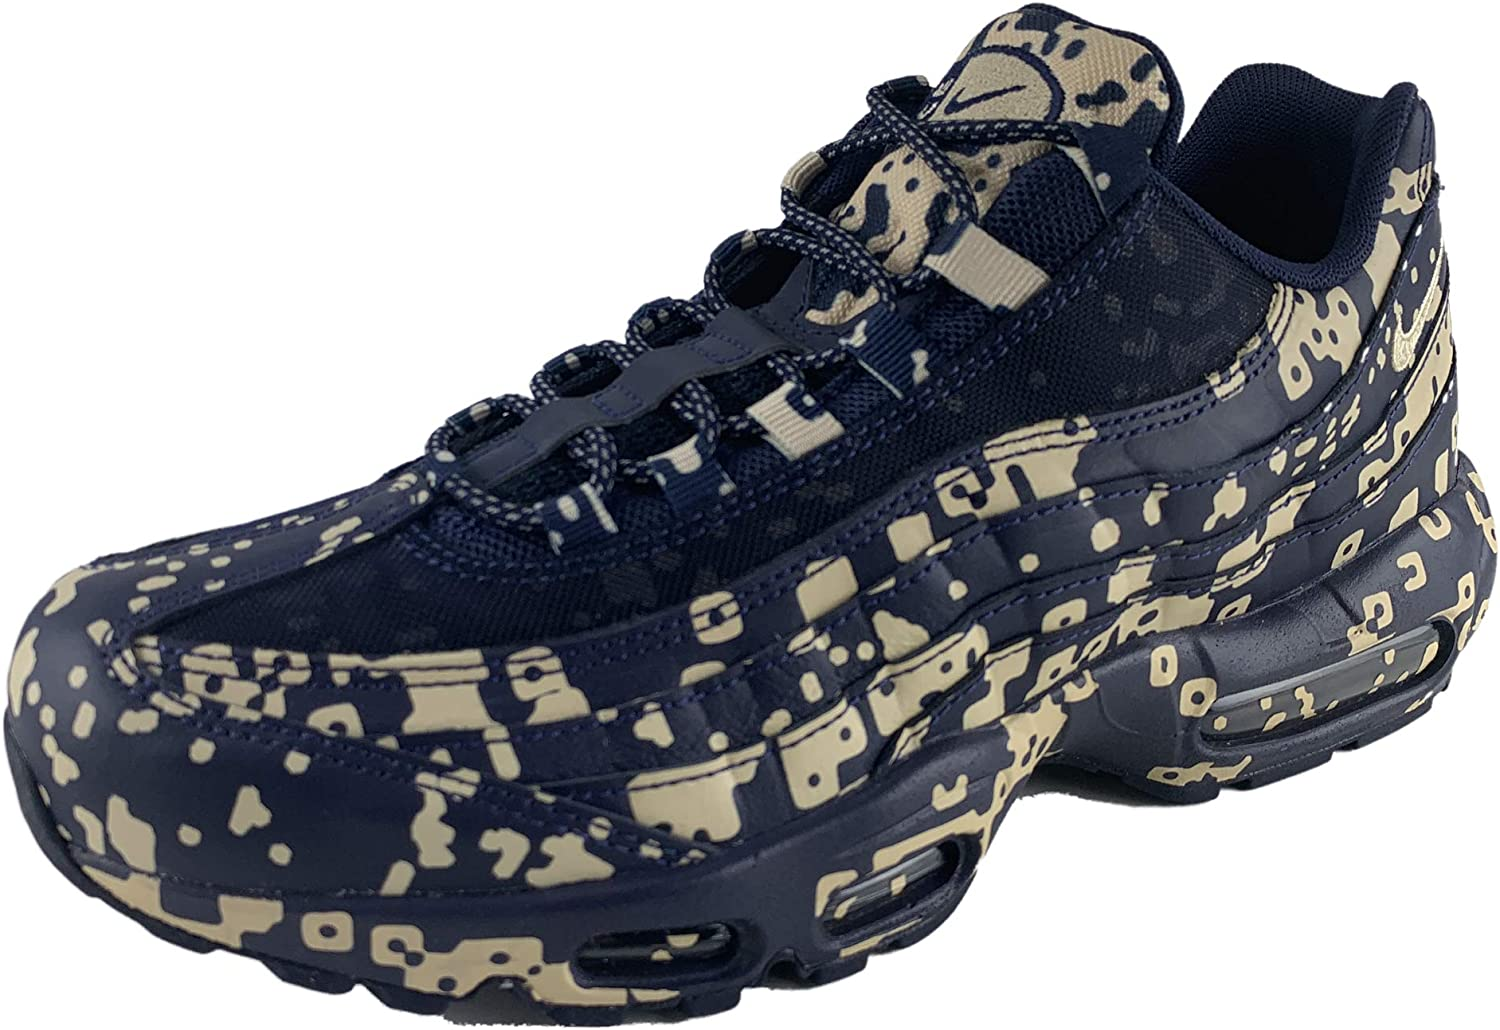 Ruidoso suelo Requisitos  Amazon.com | Nike Air Max 95 / C.E. Mens Trainers Av0765 Sneakers Shoes |  Fashion Sneakers